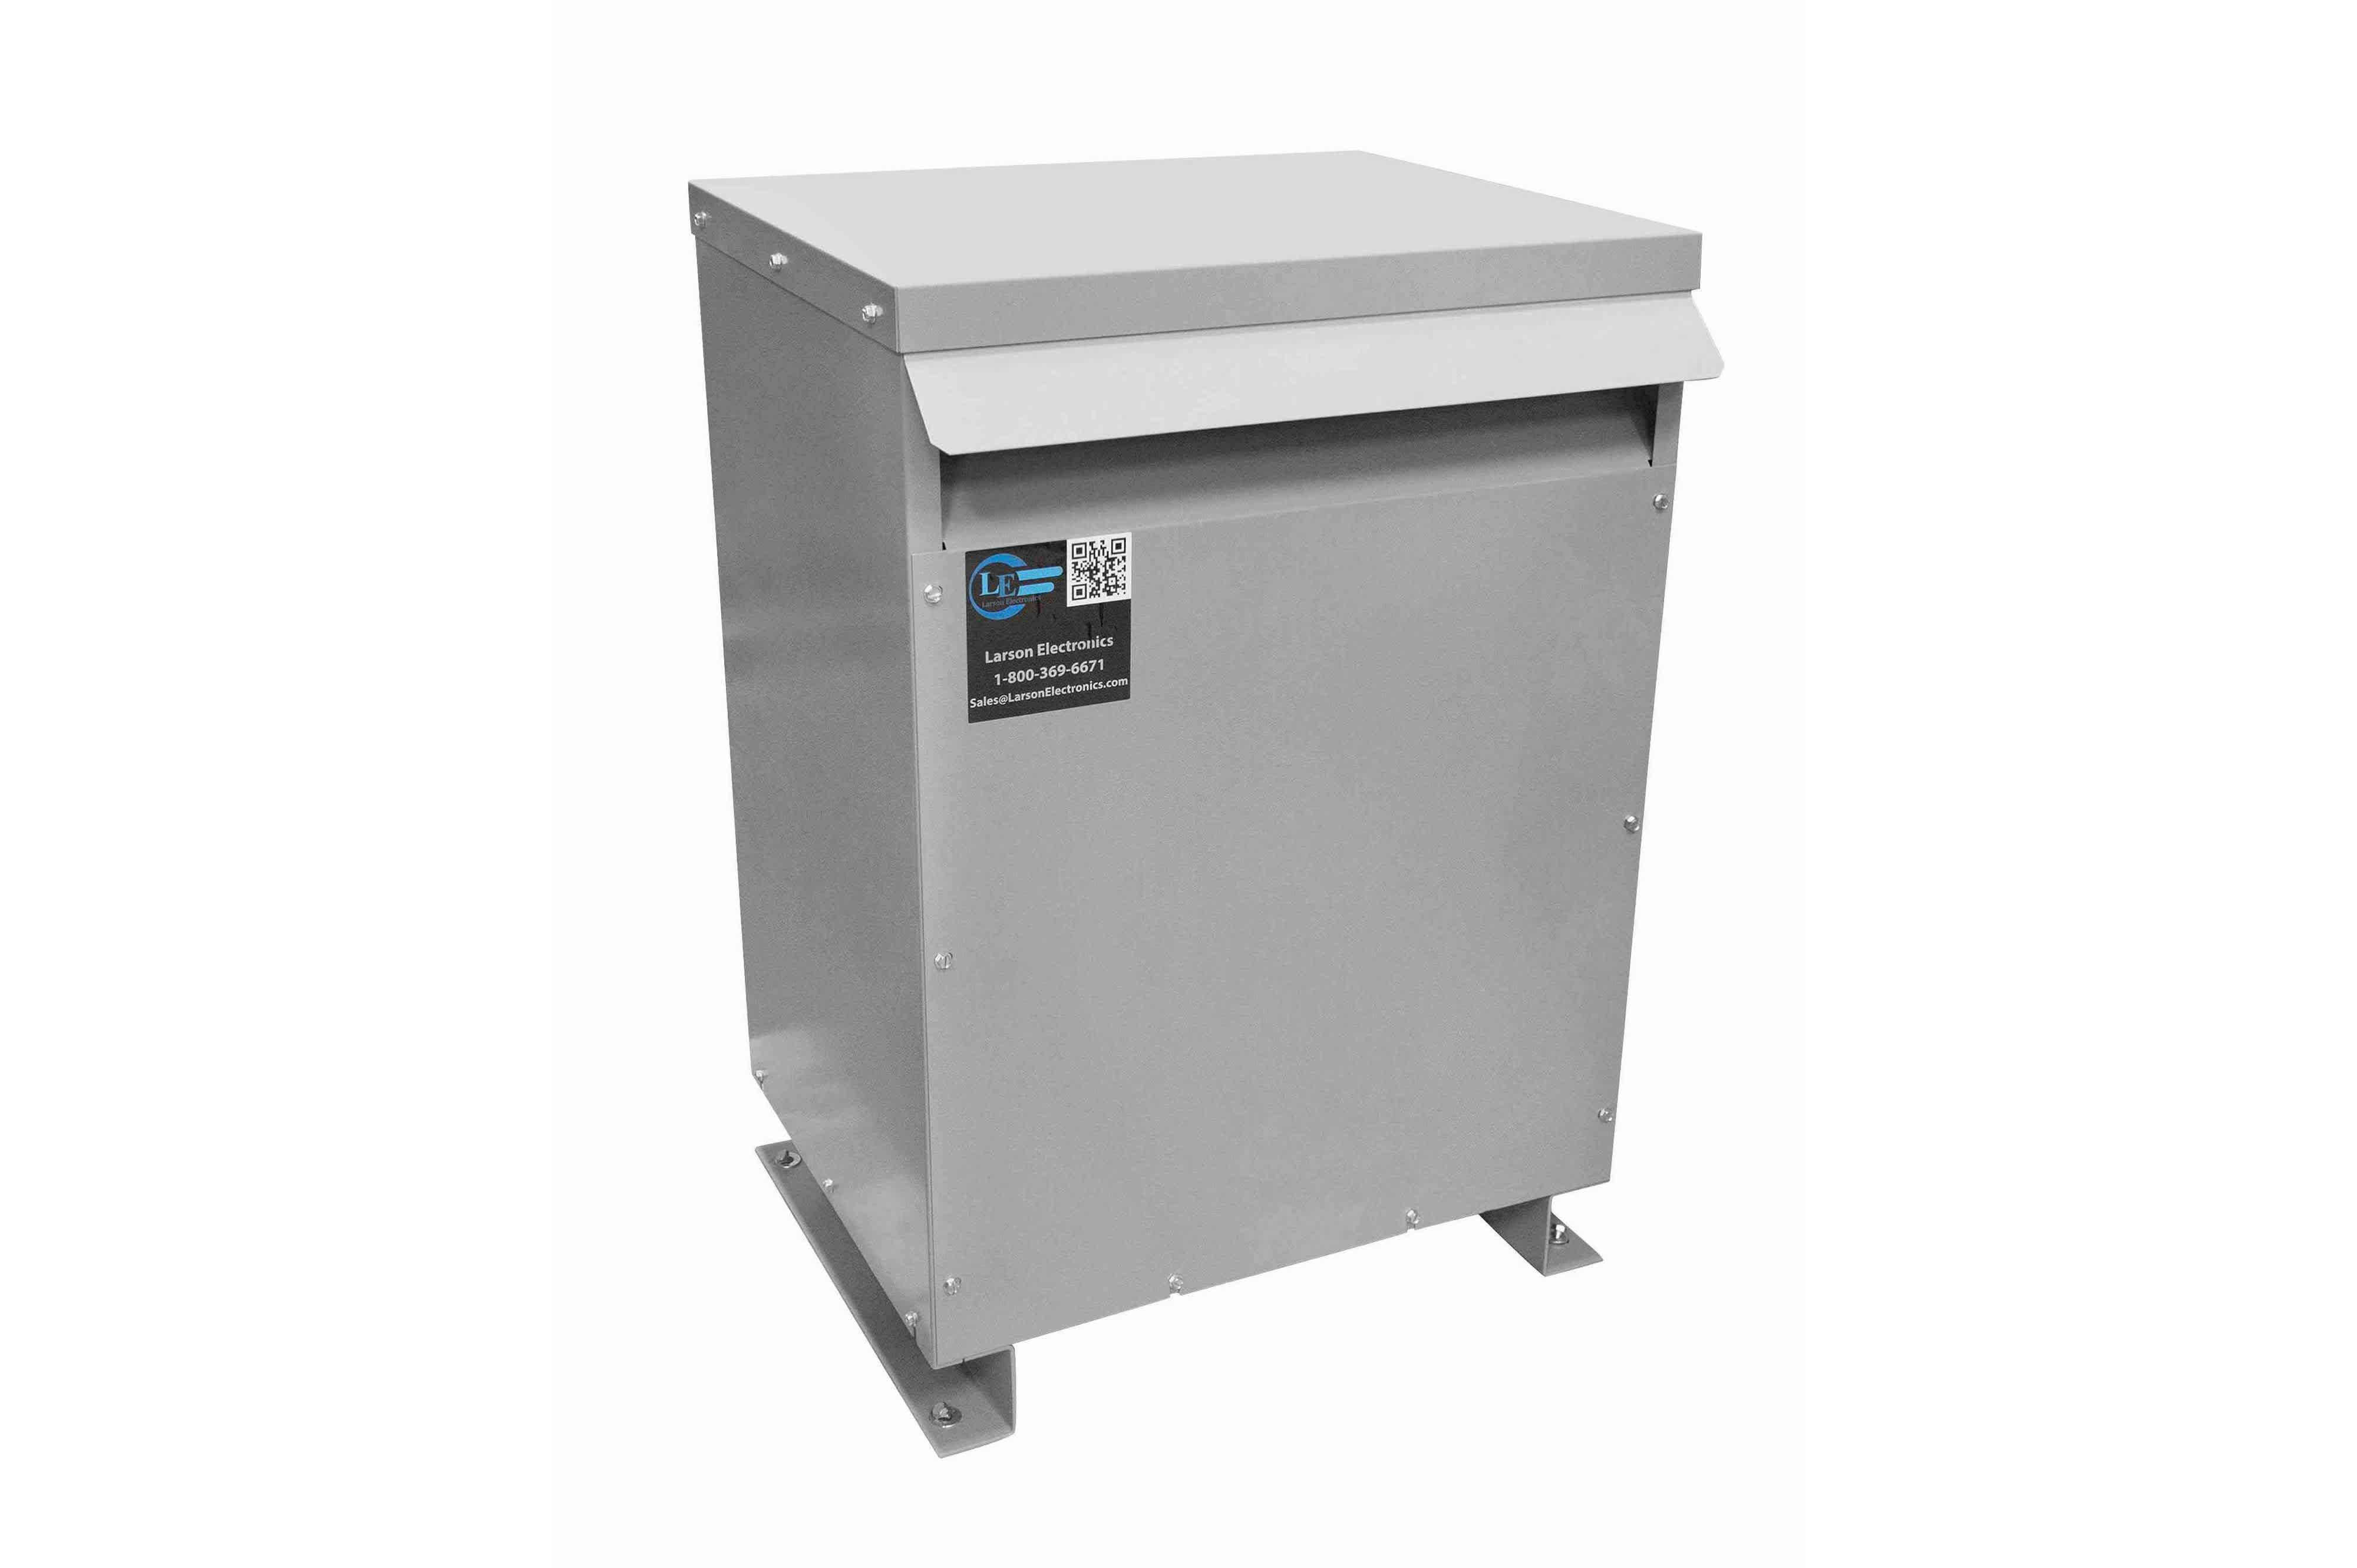 40 kVA 3PH Isolation Transformer, 208V Wye Primary, 600V Delta Secondary, N3R, Ventilated, 60 Hz